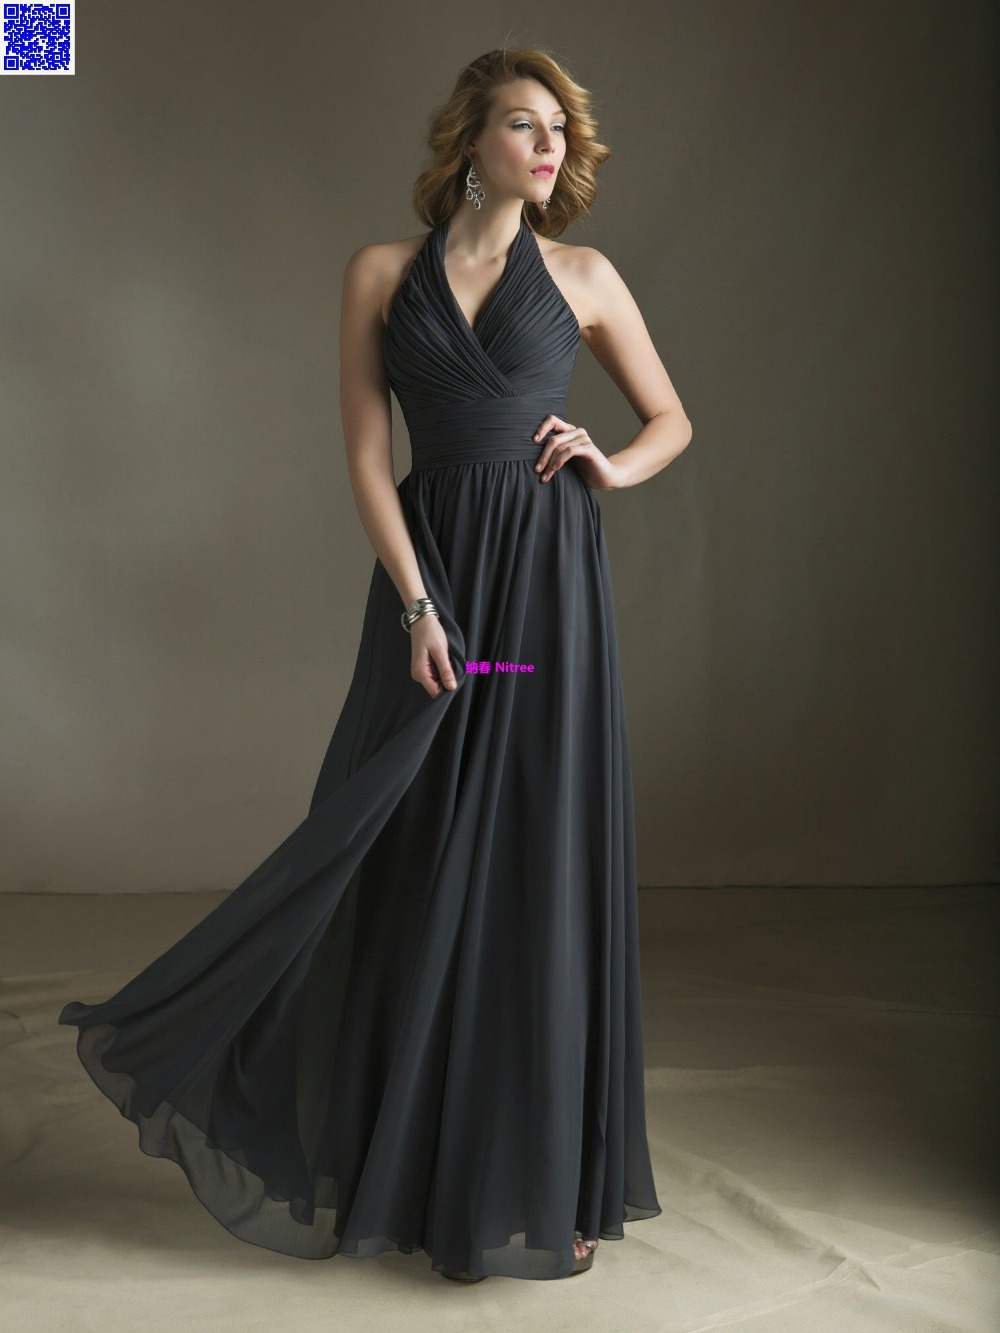 Popular bridesmaid dress collections buy cheap bridesmaid dress nitree cheap gray bridesmaid dress party gown fashion collection sexy luxury designer celebrity romantic spring 2015 ombrellifo Images